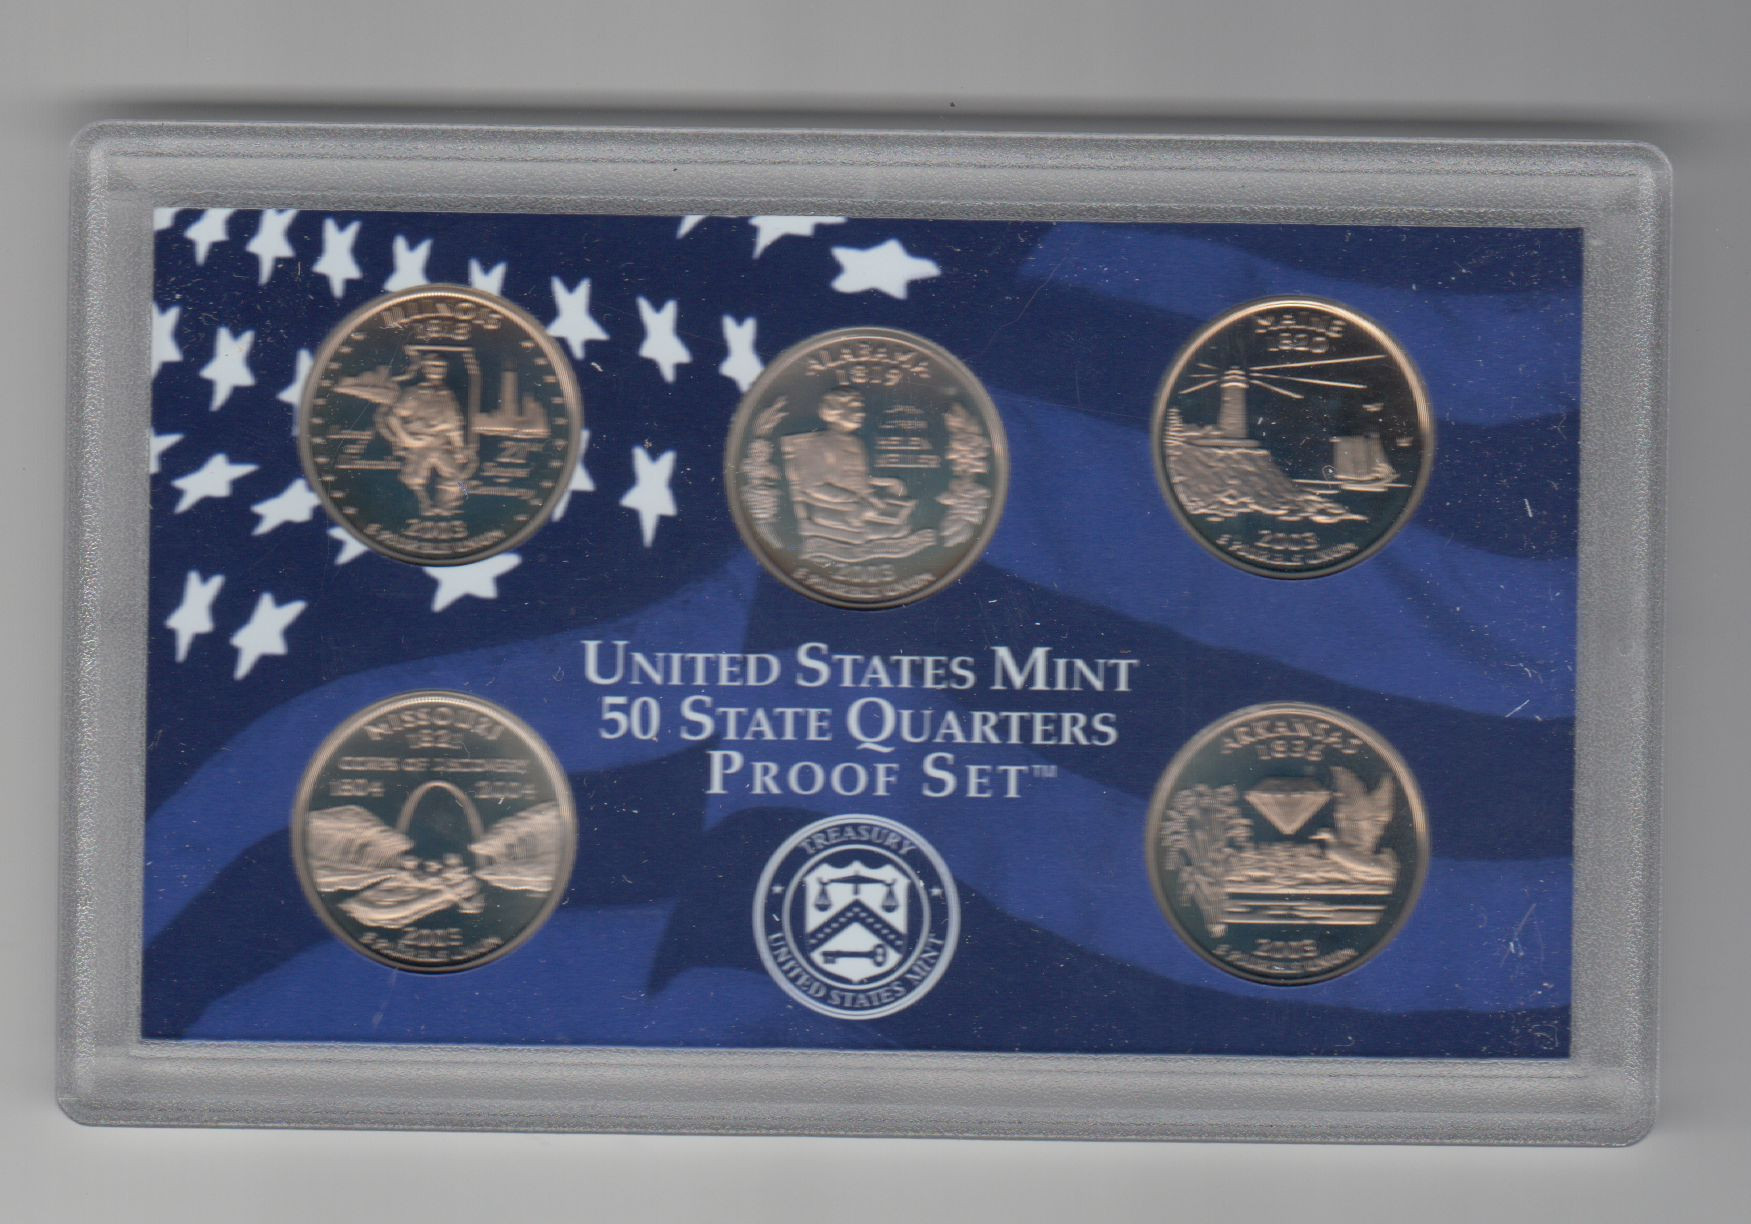 Elegant Value Of 5 Coins 50 State Quarters Proof Set In Box with State Quarter Set Value Of Luxury United States Mint Proof Sets Versus Uncirculated Sets State Quarter Set Value